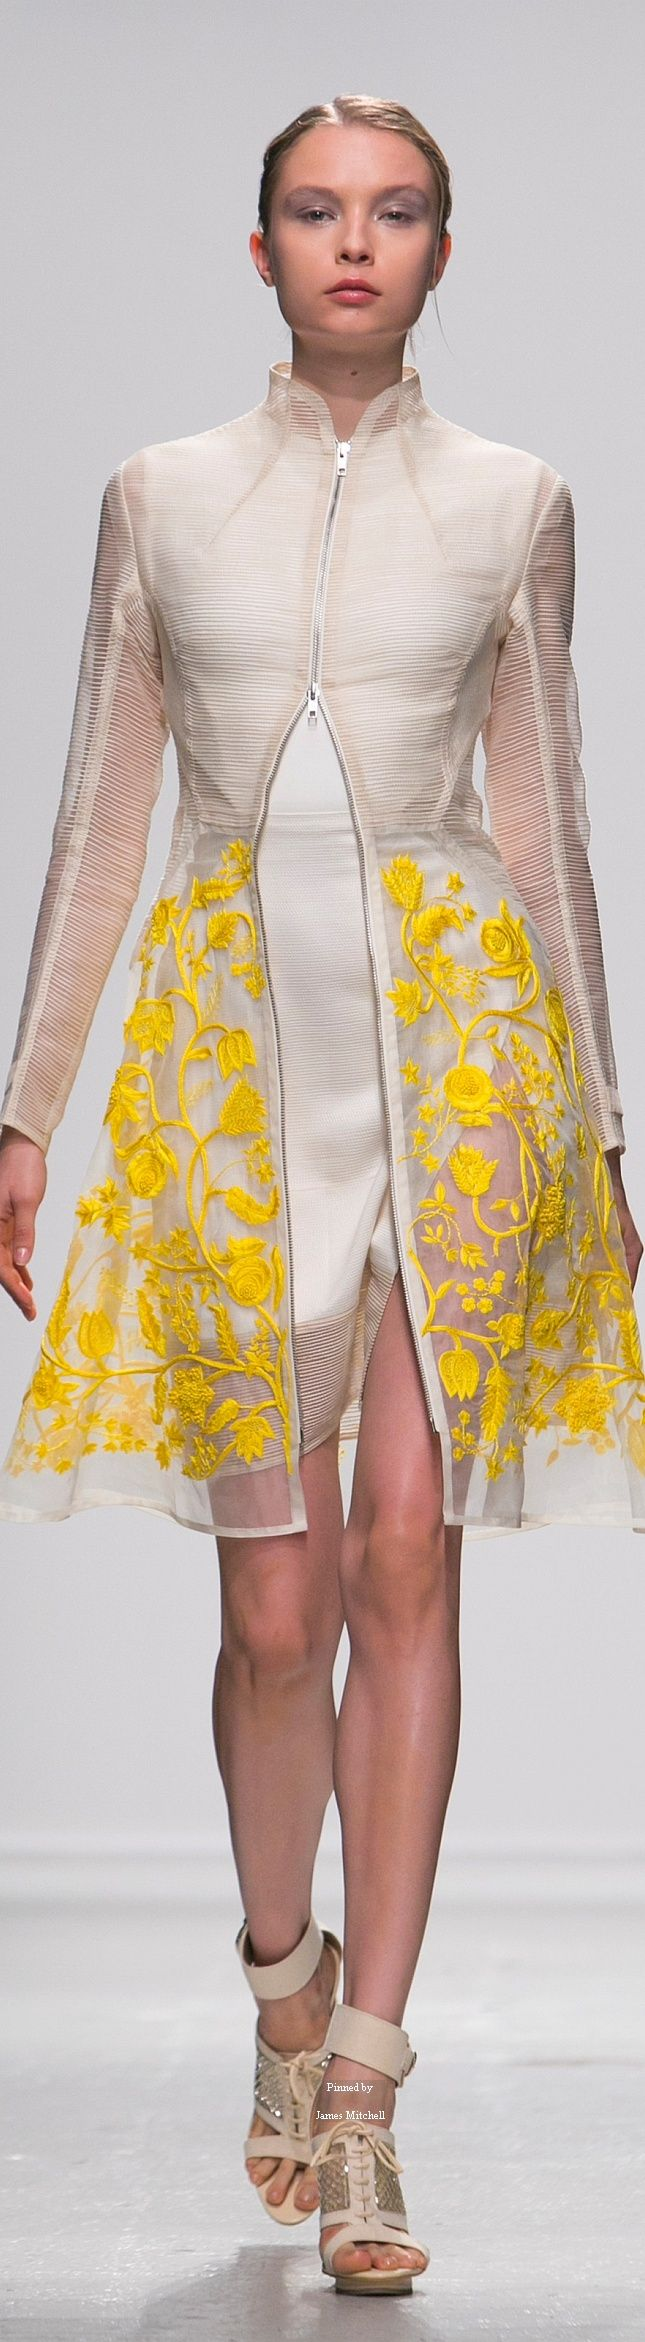 Rahul Mishra Spring Summer 2015 Ready To Wear collection